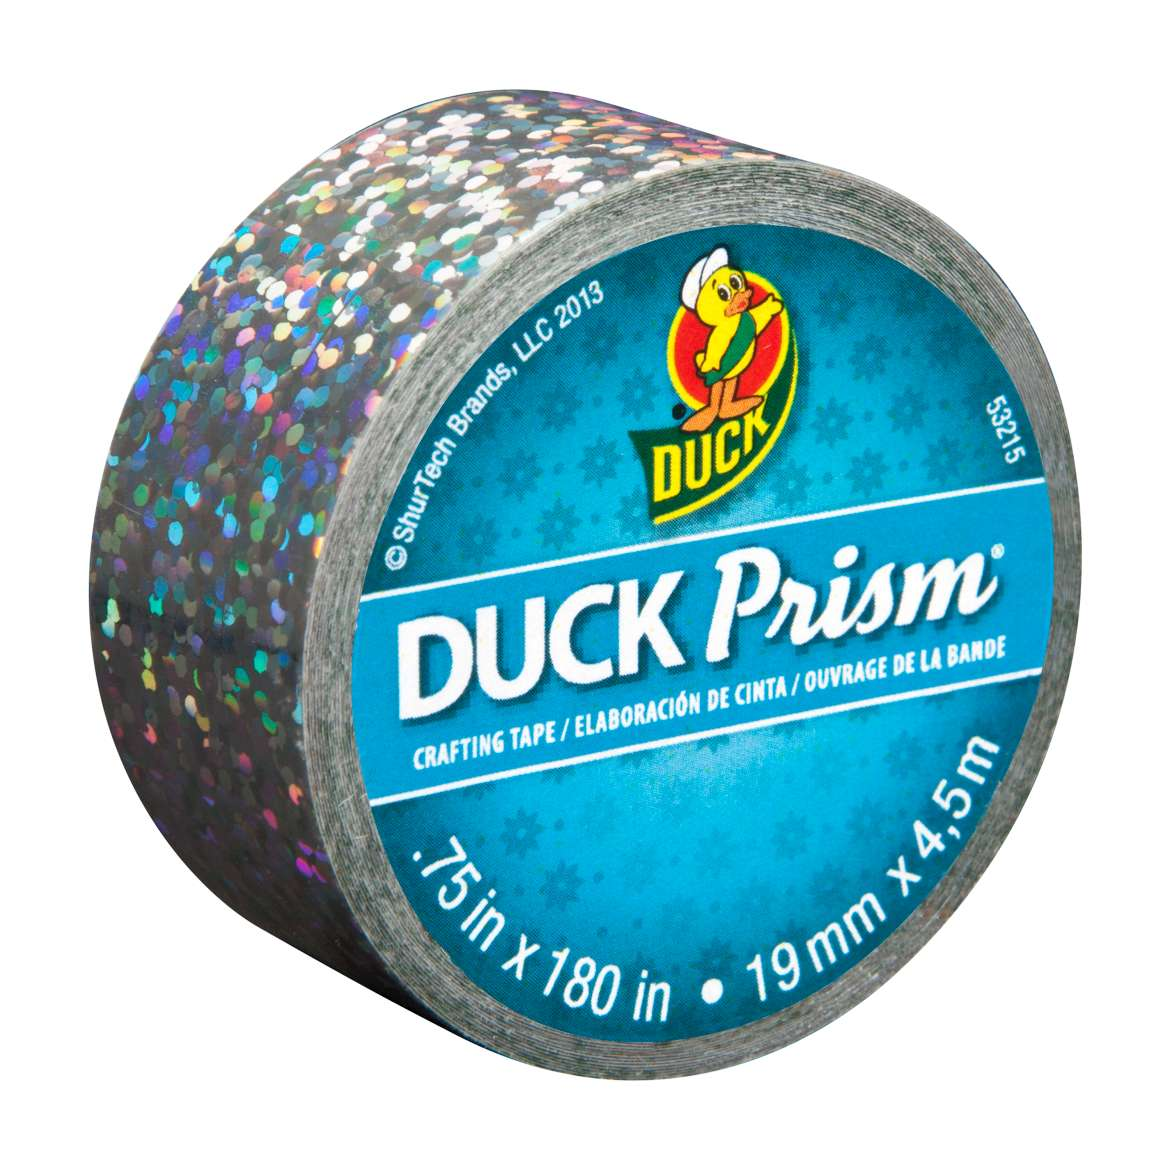 Duck Prism® Crafting Tape Mini-Rolls Image